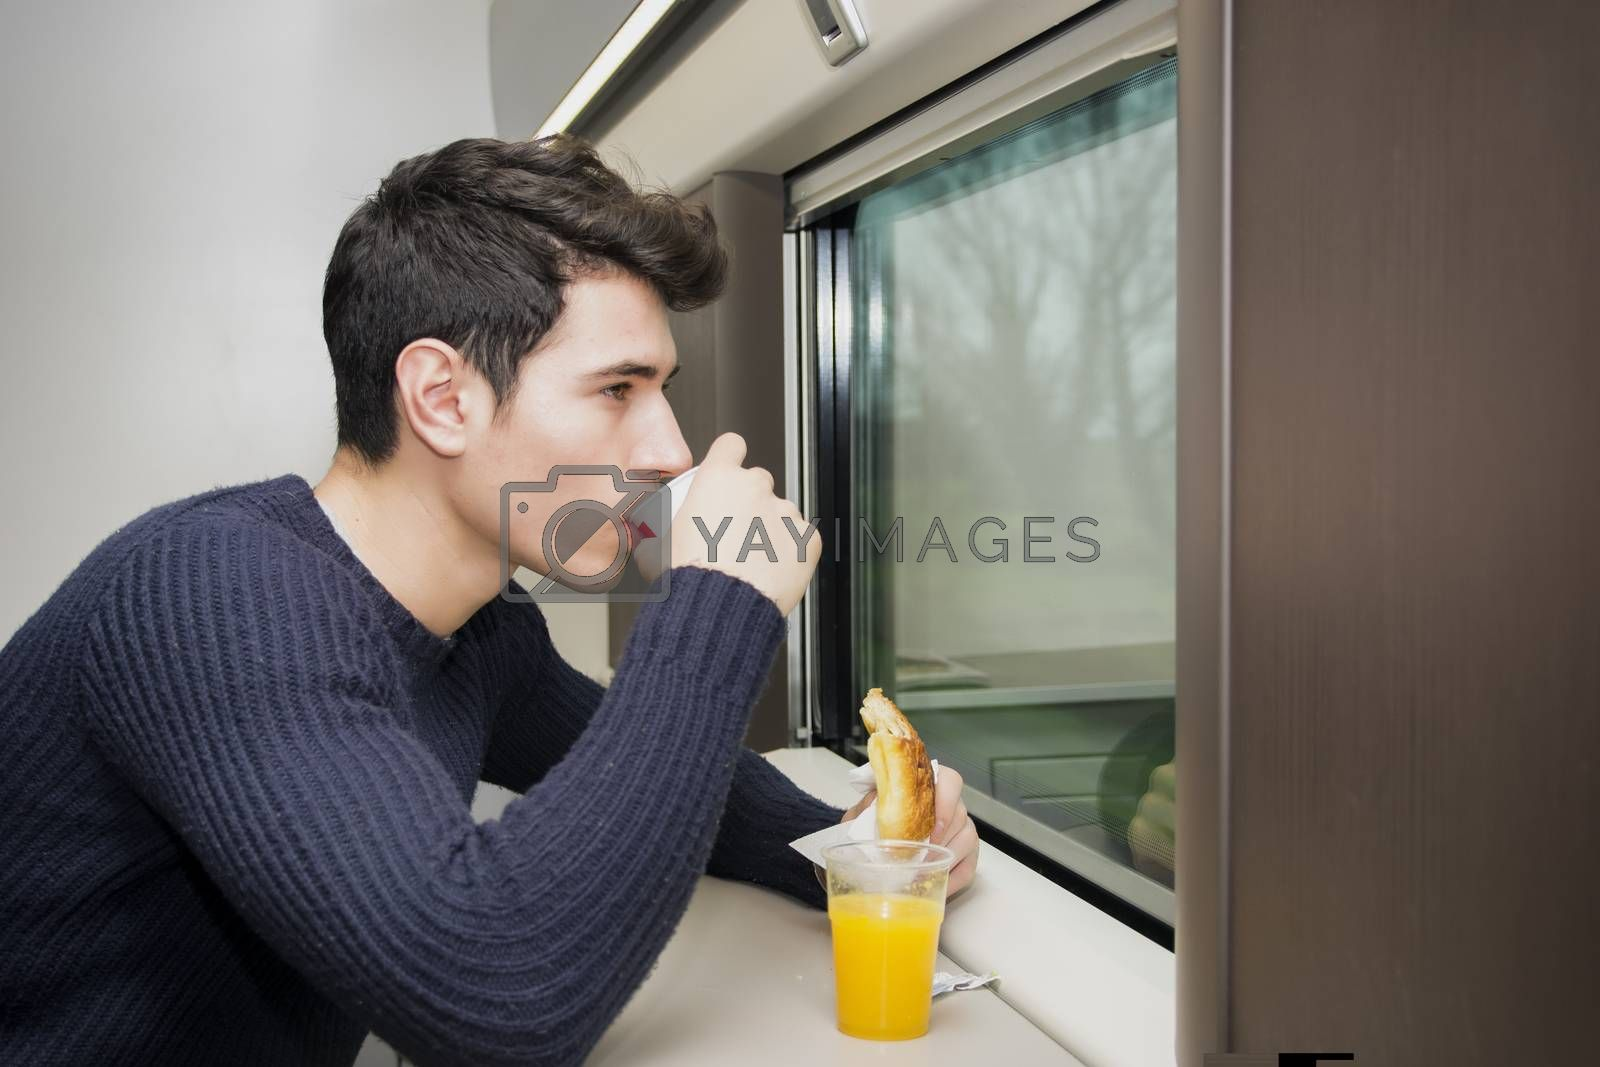 Young man eating refreshments on a train balancing the fruit juice on the ledge below the window as he eats a roll and coffee while commuting or traveling